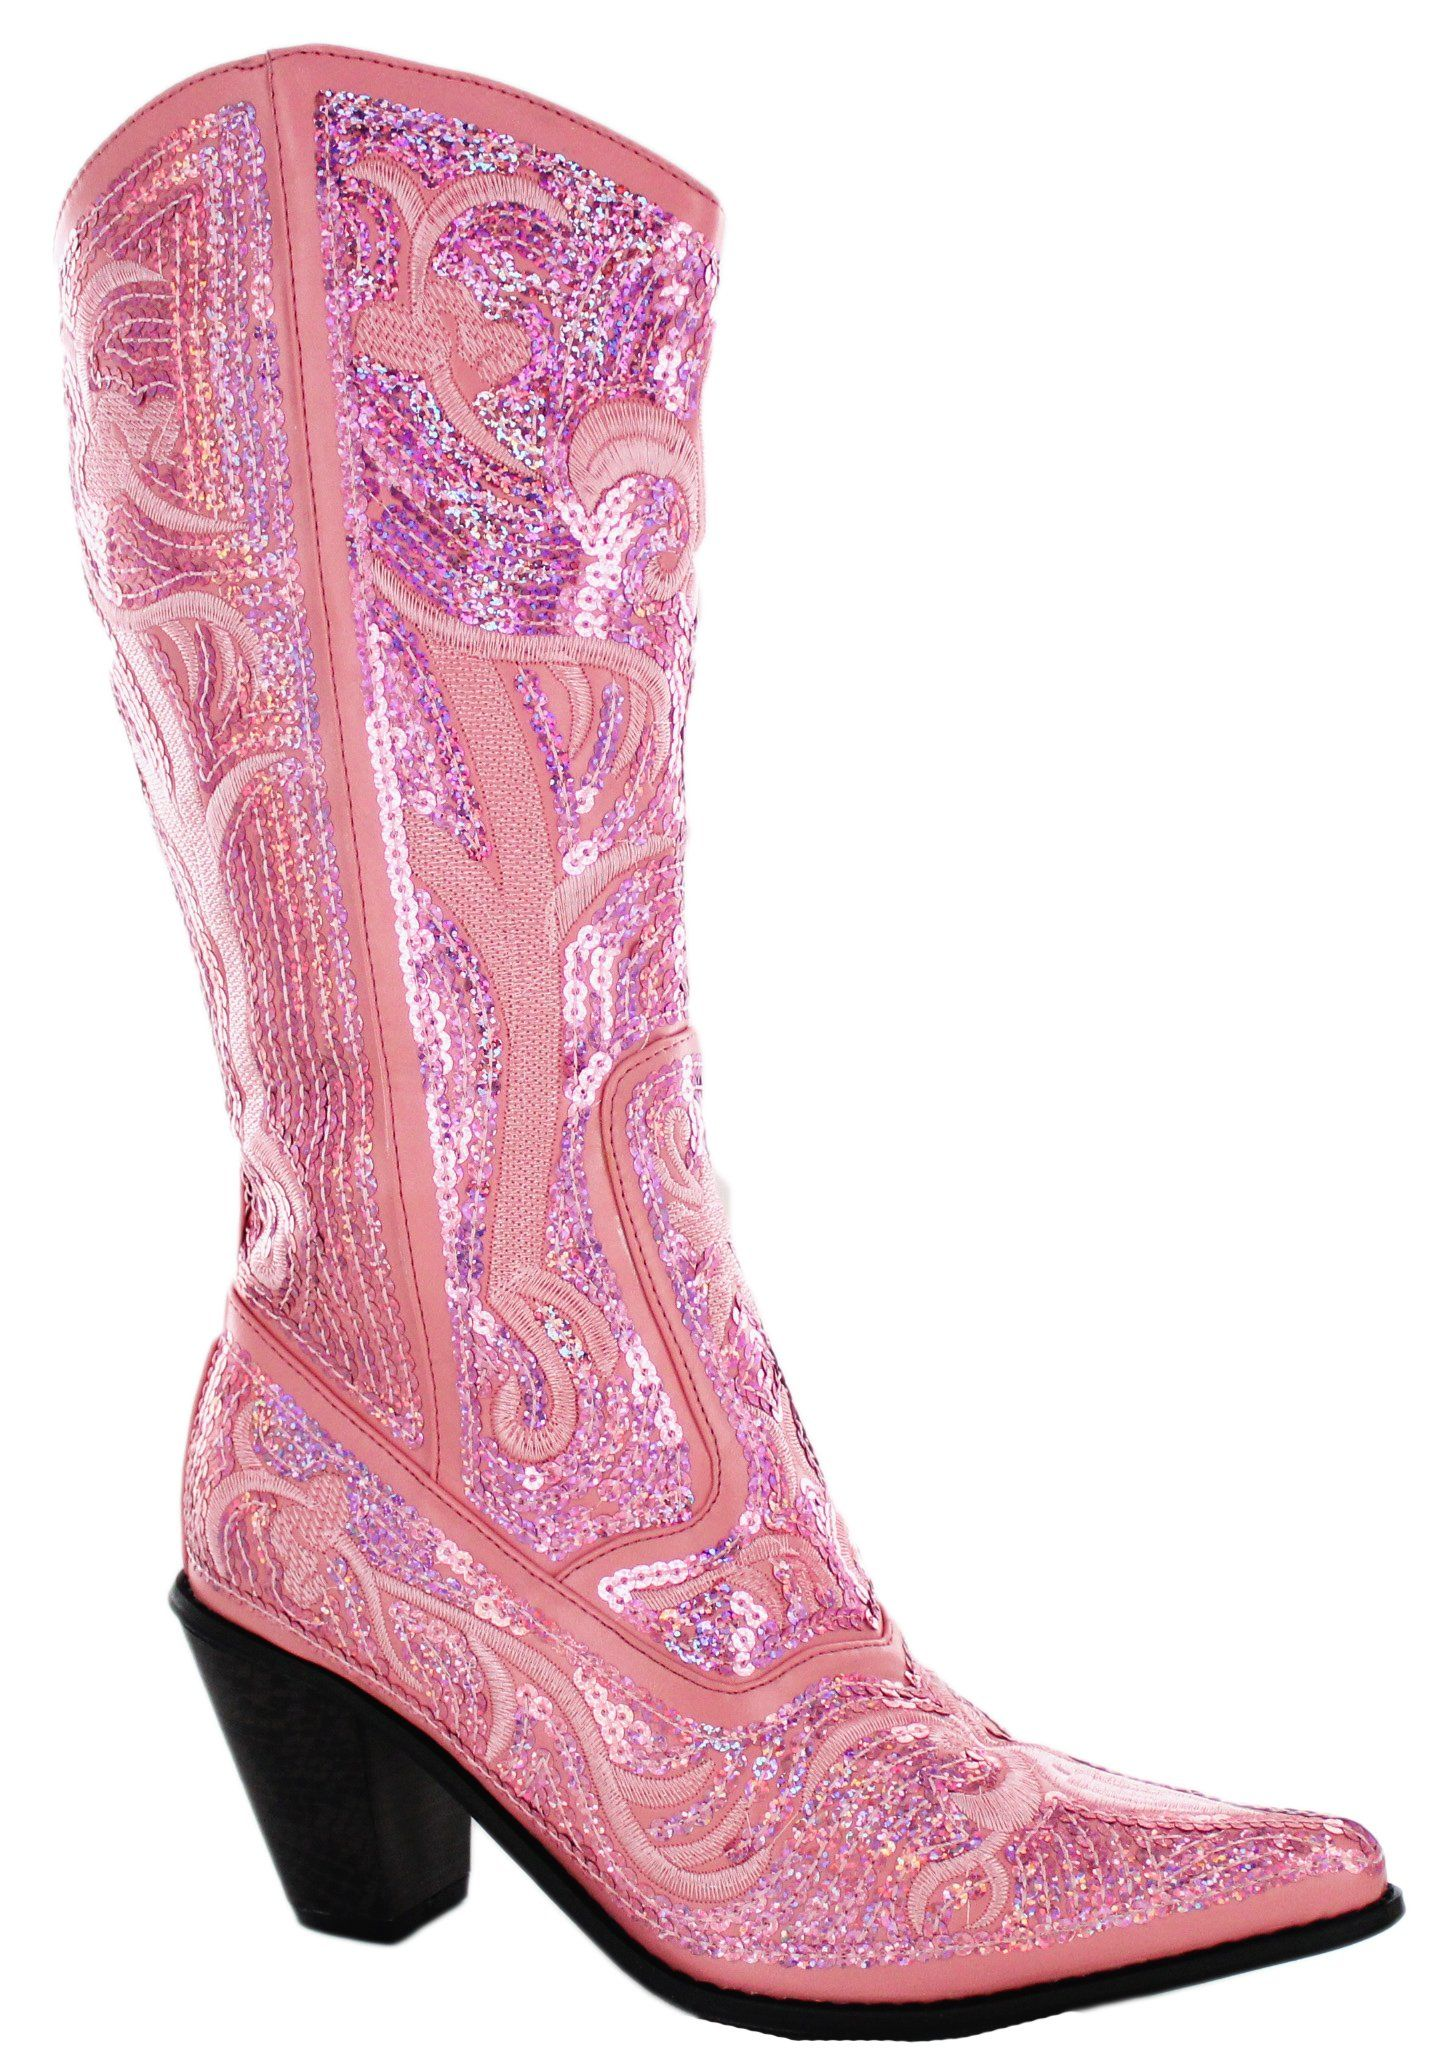 76dac655ad1 Helen s Heart Women s Sparkle Sequin Bling Full Tall Western Cowboy Boots  Assorted Colors